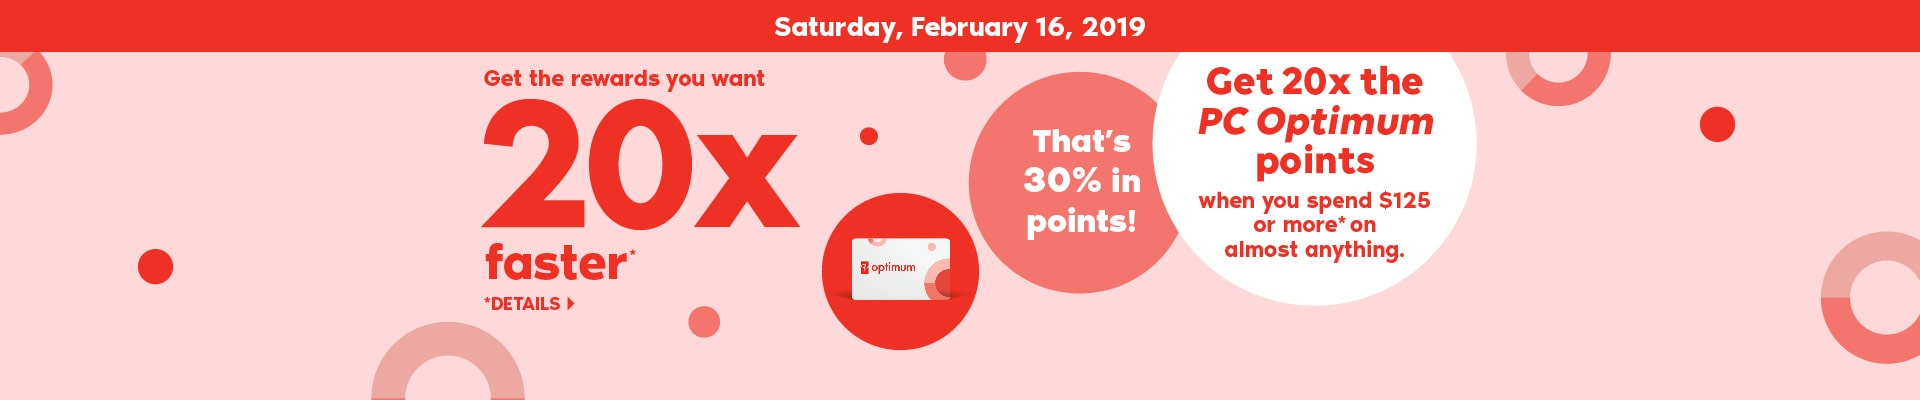 February 16, 2019 Get the rewards you want 20x faster*. *Details. Get 20x the PC Optimum points when you spend $125 or more* on almost anything. That's 30% in points!